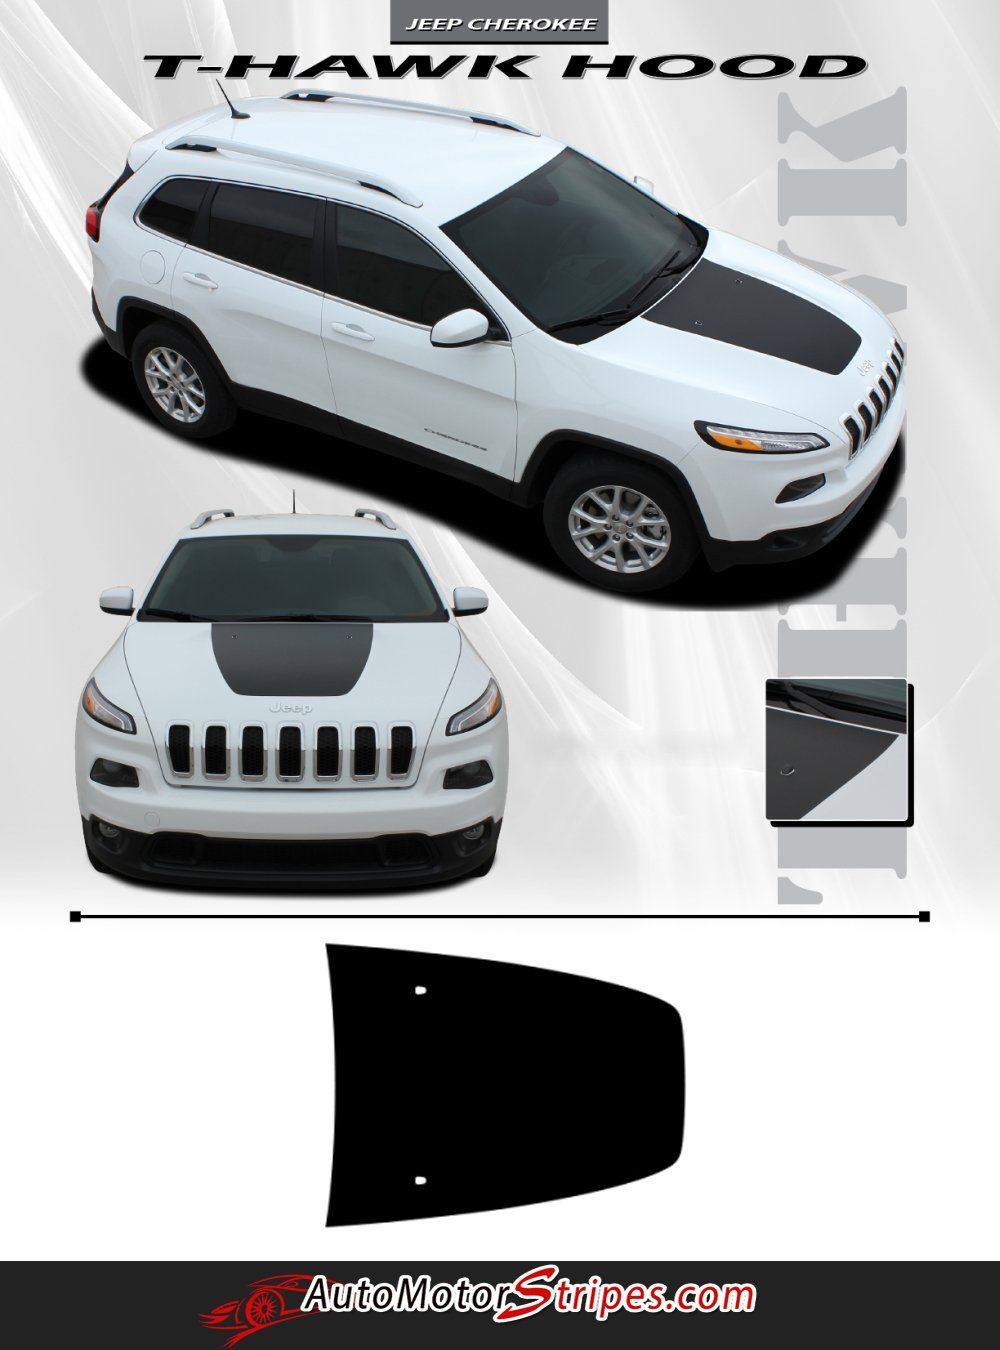 2014 2020 Jeep Cherokee T Hawk Factory Oem Trailhawk Style Center Hood Blackout Vinyl Decal Graphic Stripes Jeep Cherokee Jeep Cherokee Accessories Cherokee